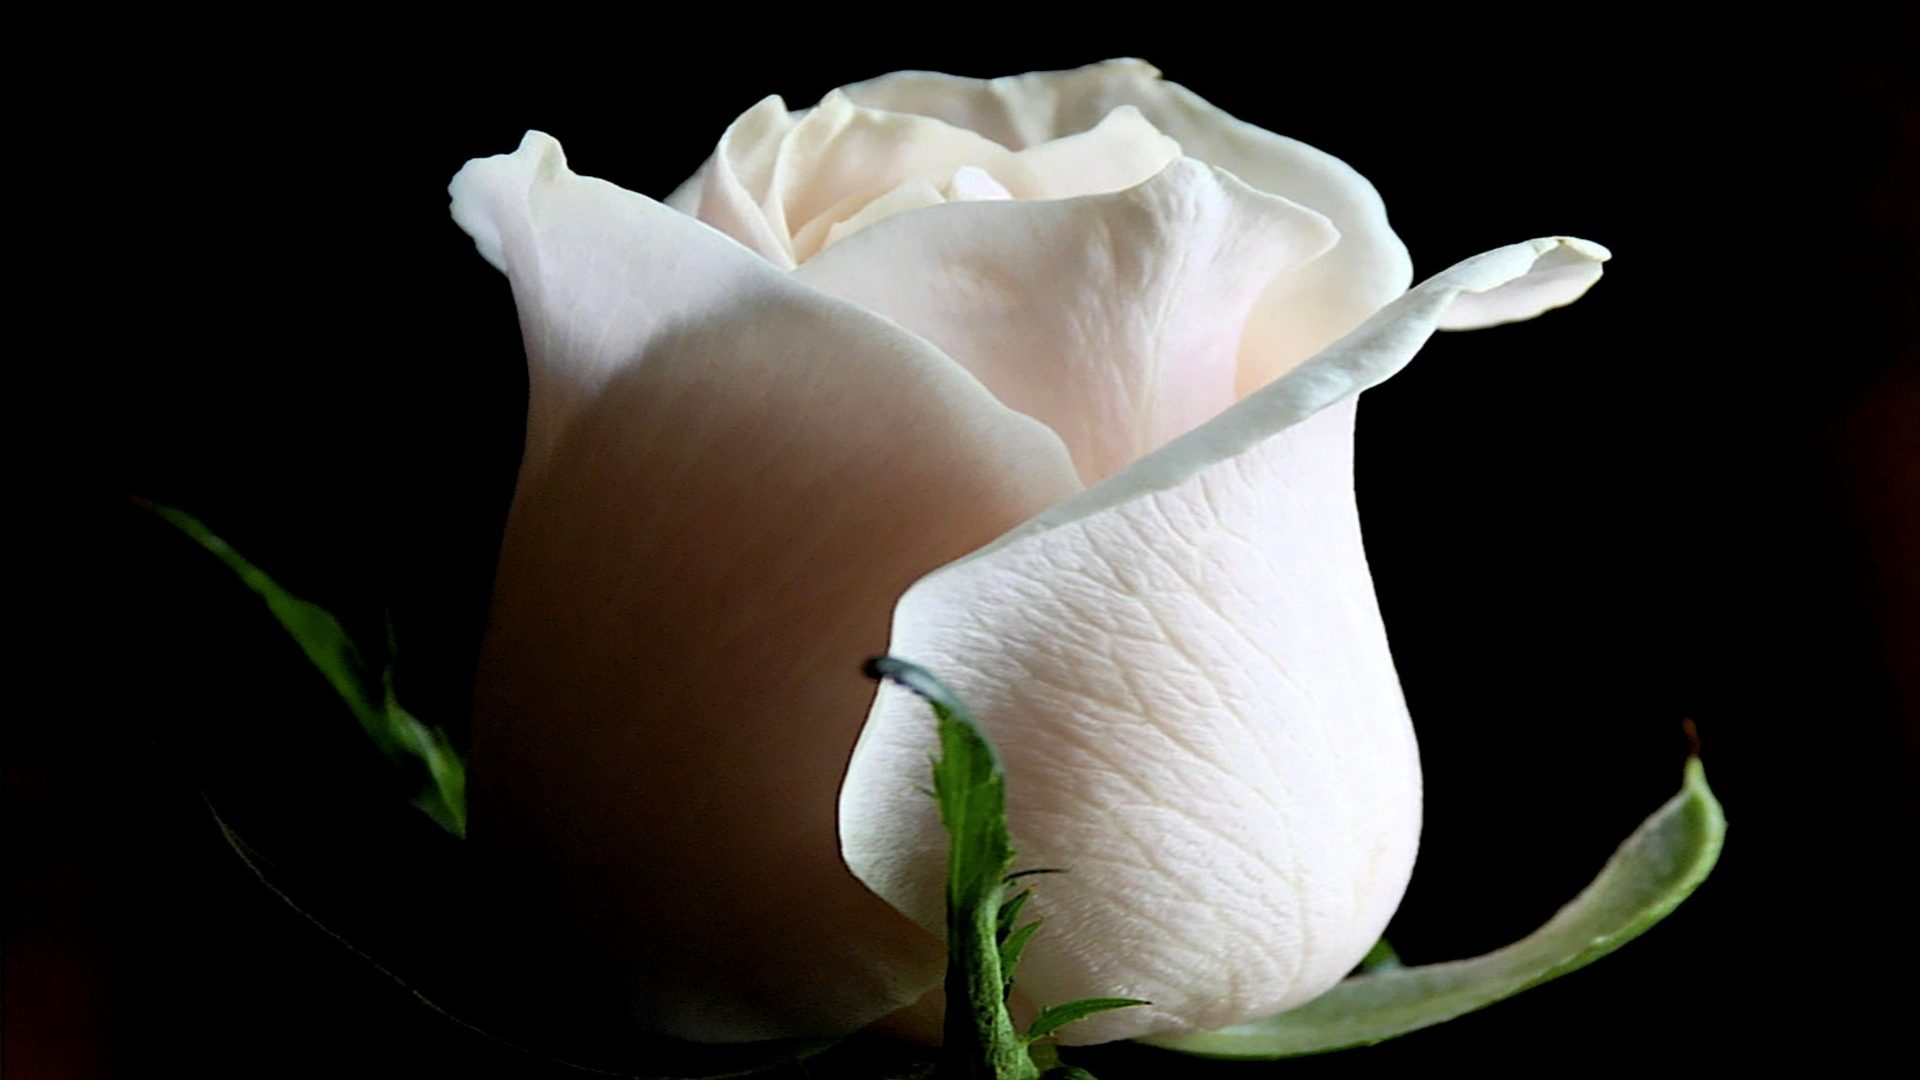 Purity Heart Romances Gorgeous Roses Caring Loving - Hd White Rose , HD Wallpaper & Backgrounds